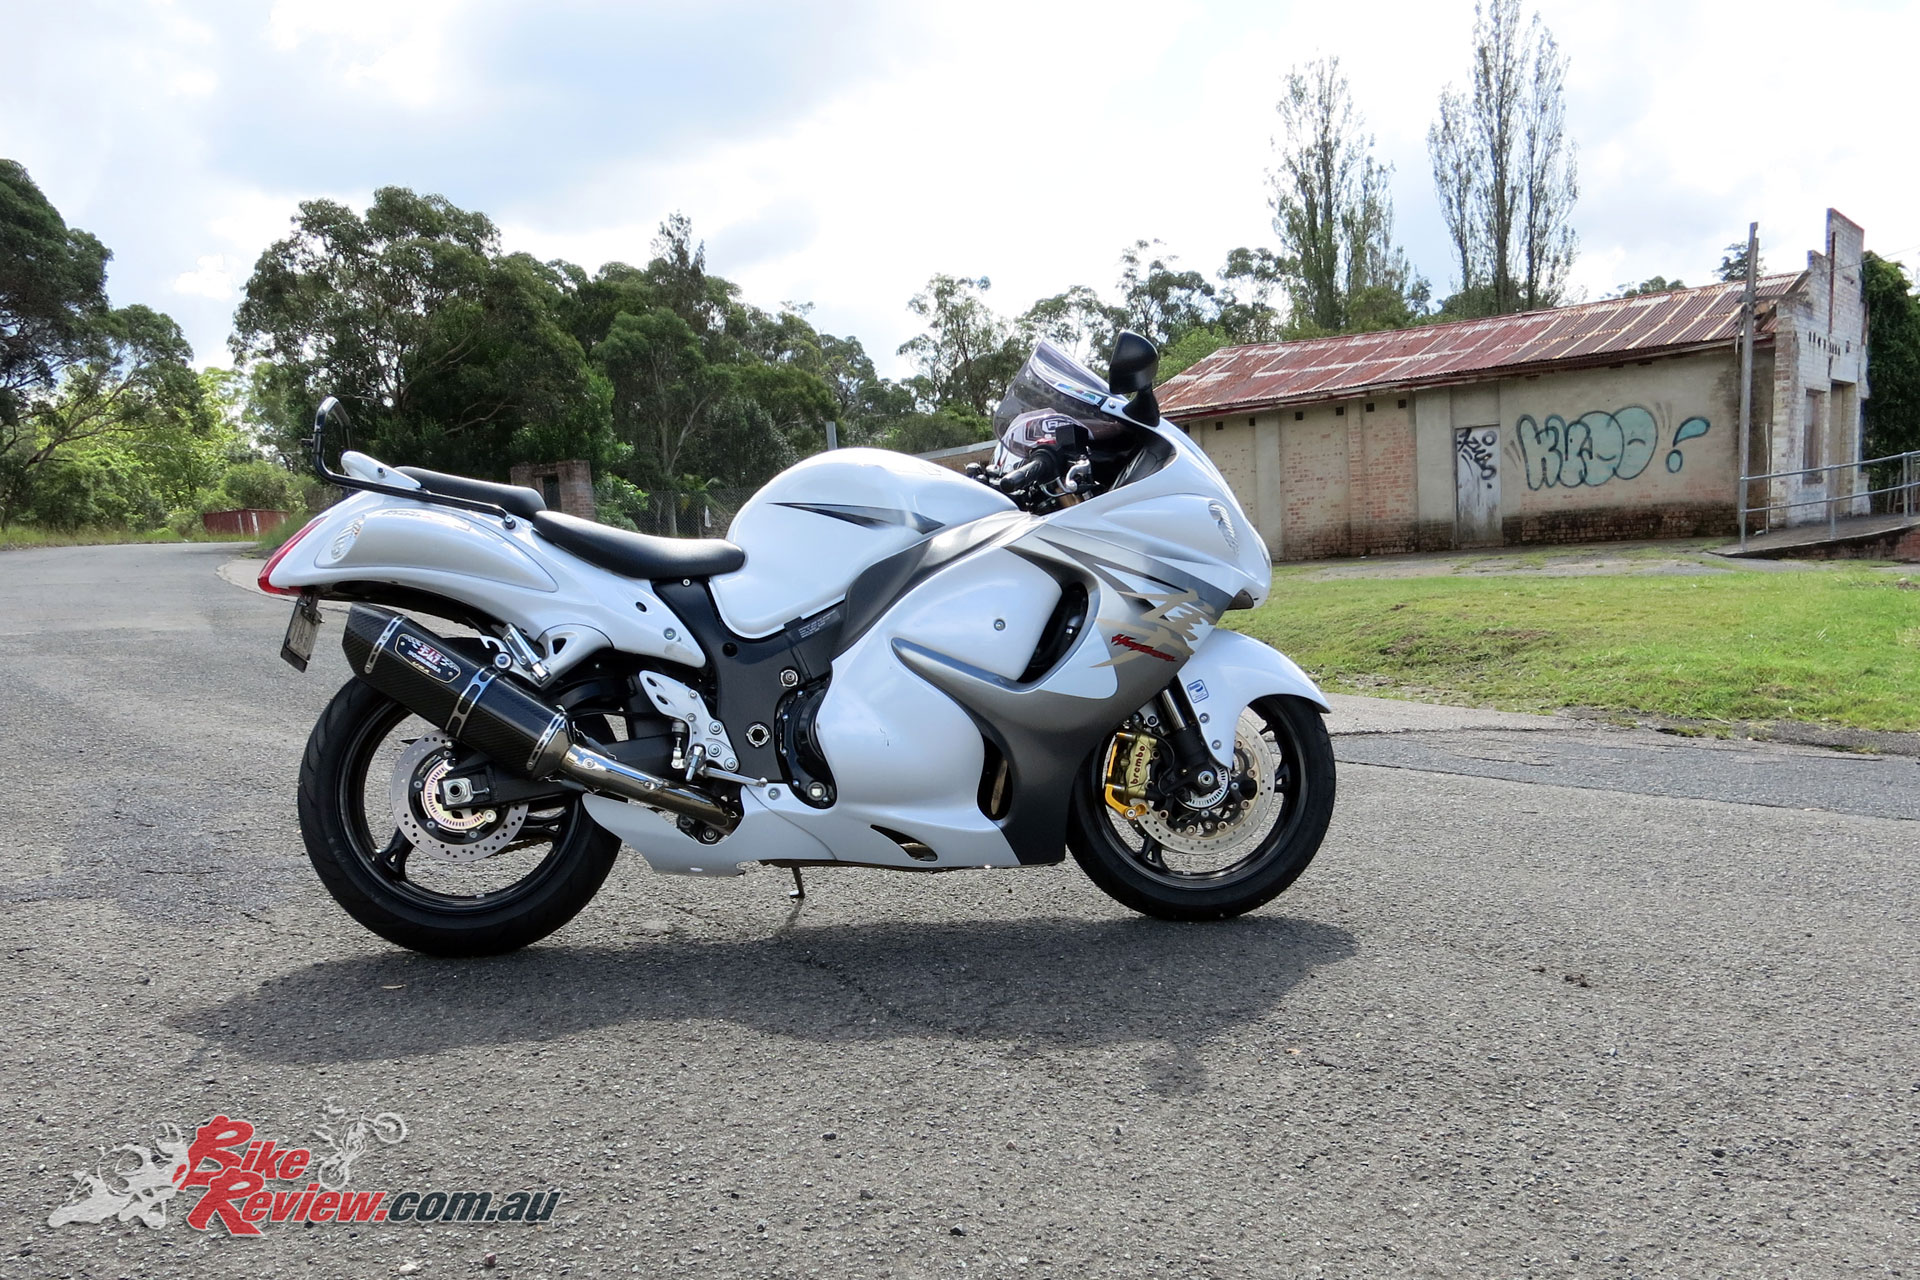 in review: suzuki hayabusa (2013-2018) - bike review